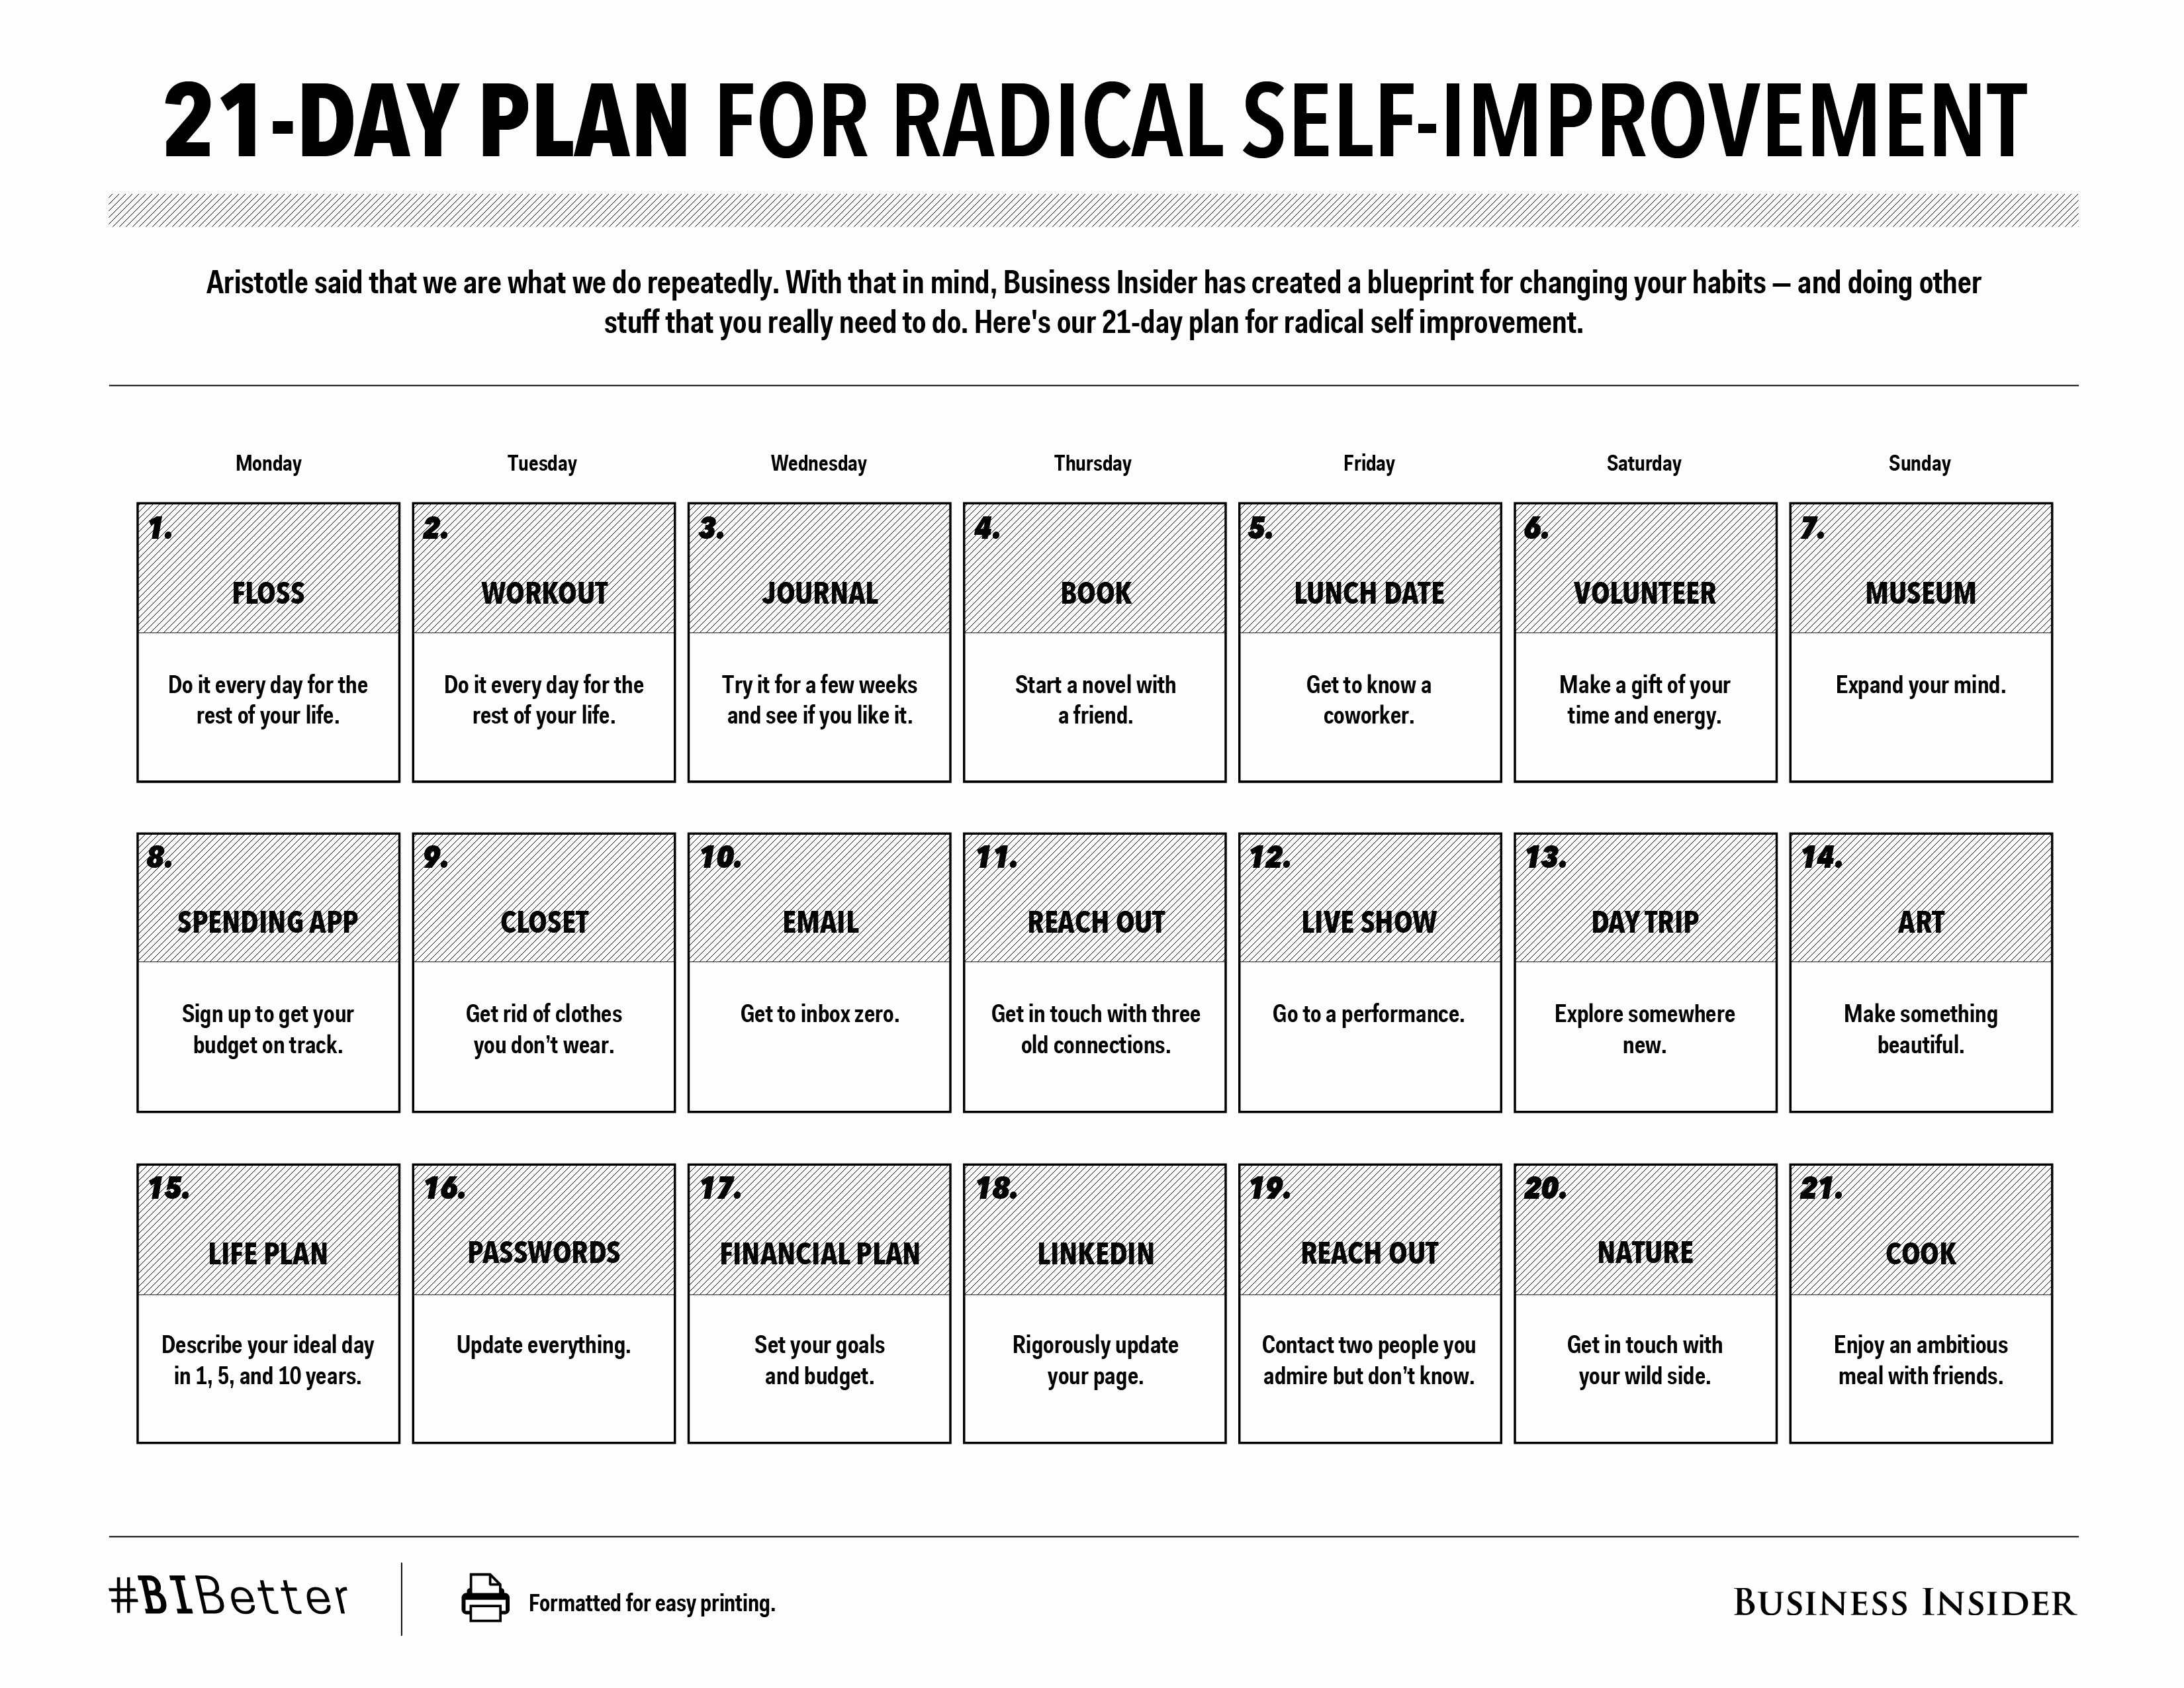 Personal Improvement Plan Template Fresh 21 Day Plan for Radical Self Improvement [print Friendly